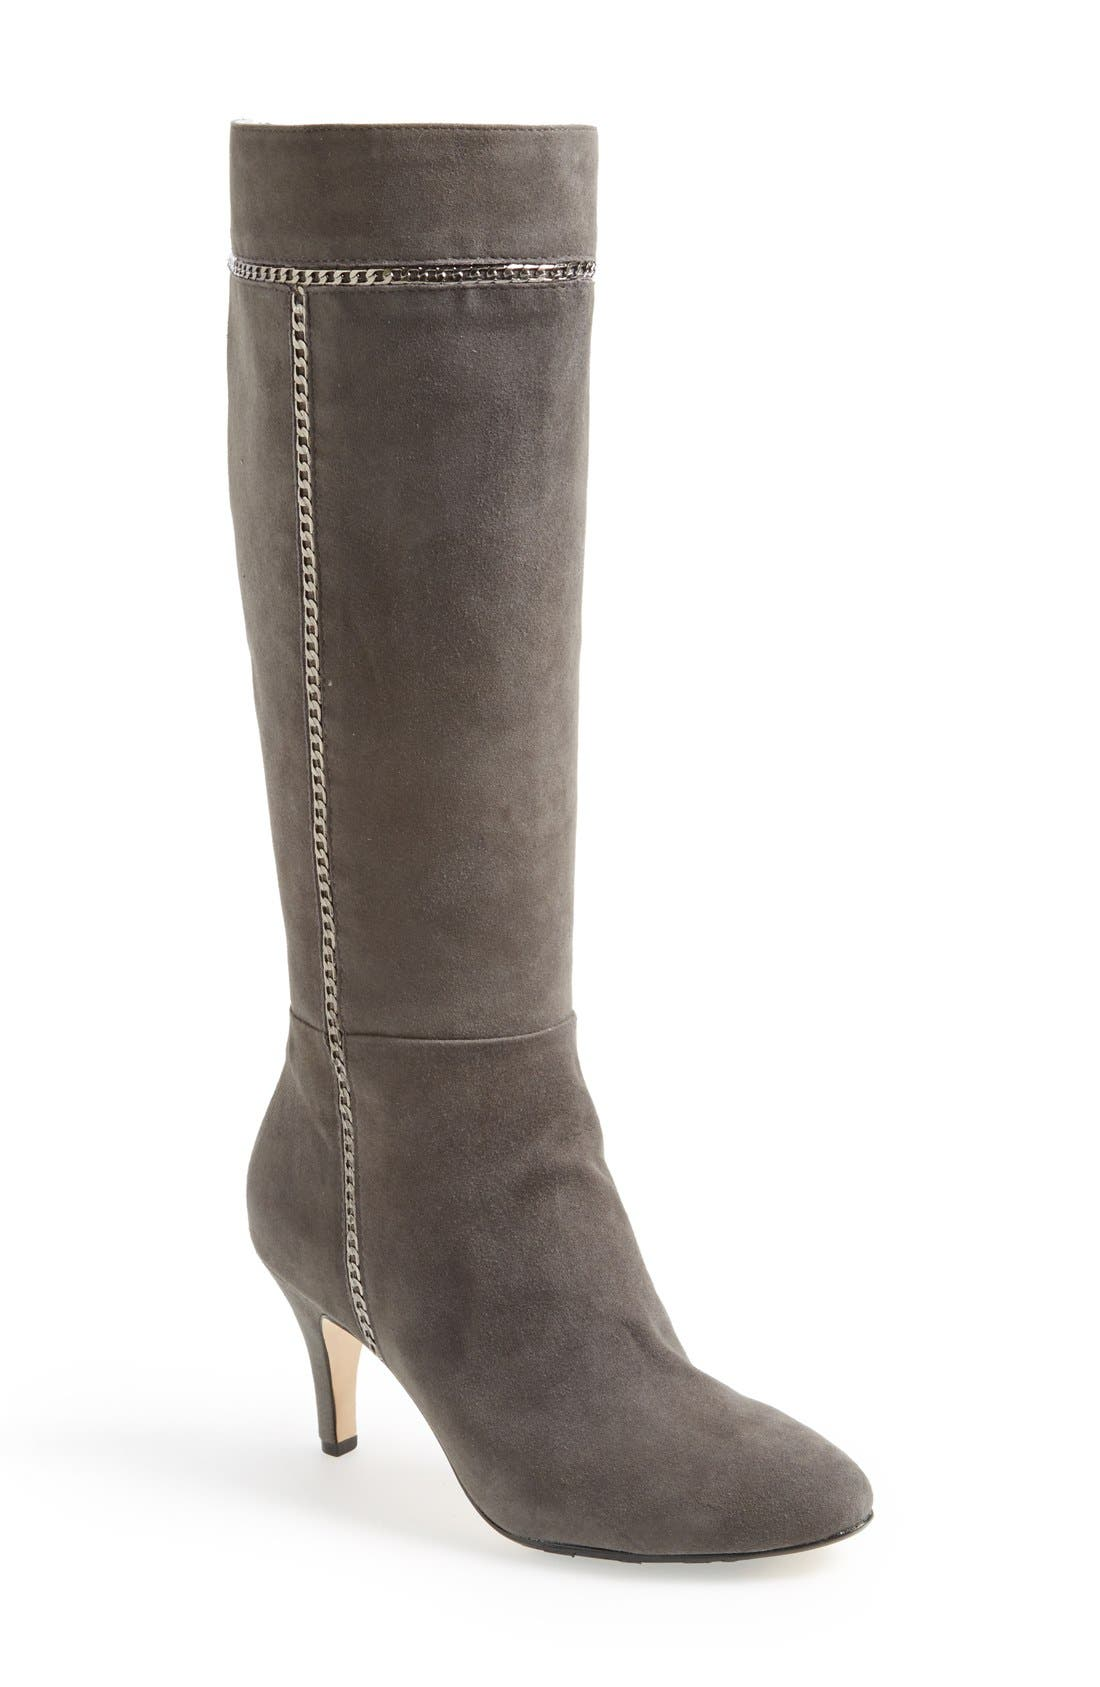 Alternate Image 1 Selected - Taryn Rose 'Treyes' Tall Suede Boot (Women)